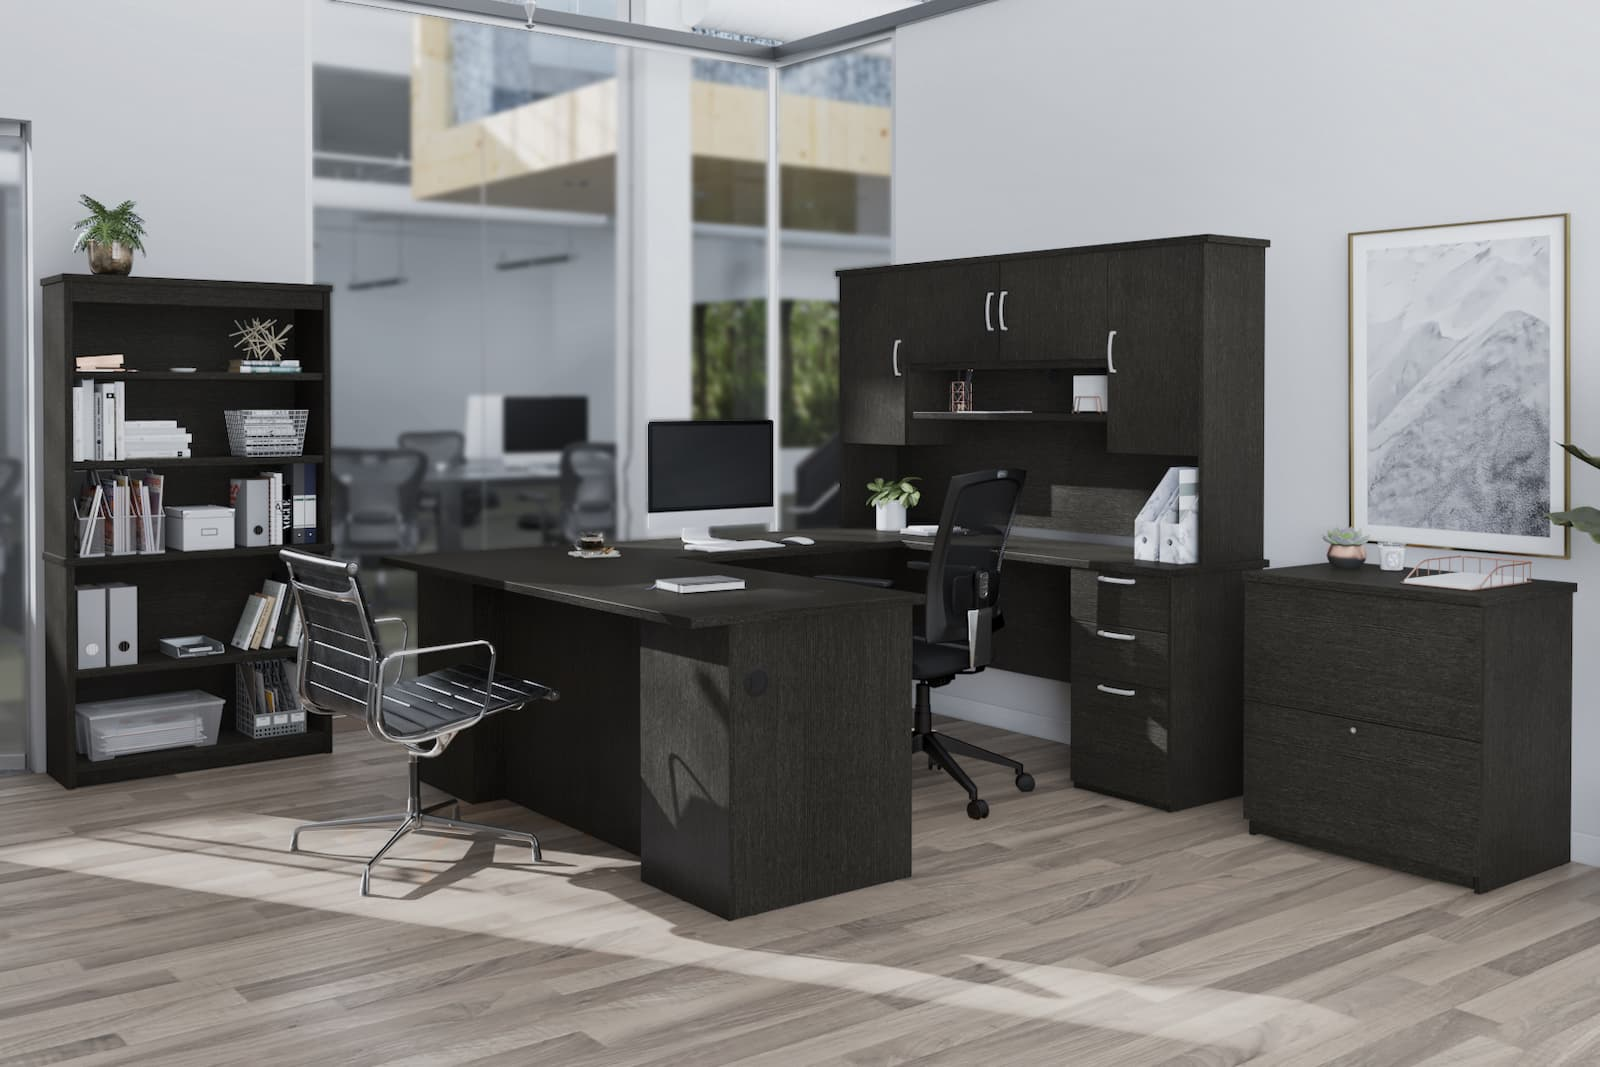 black u shaped executive desk in private commercial office with big windows